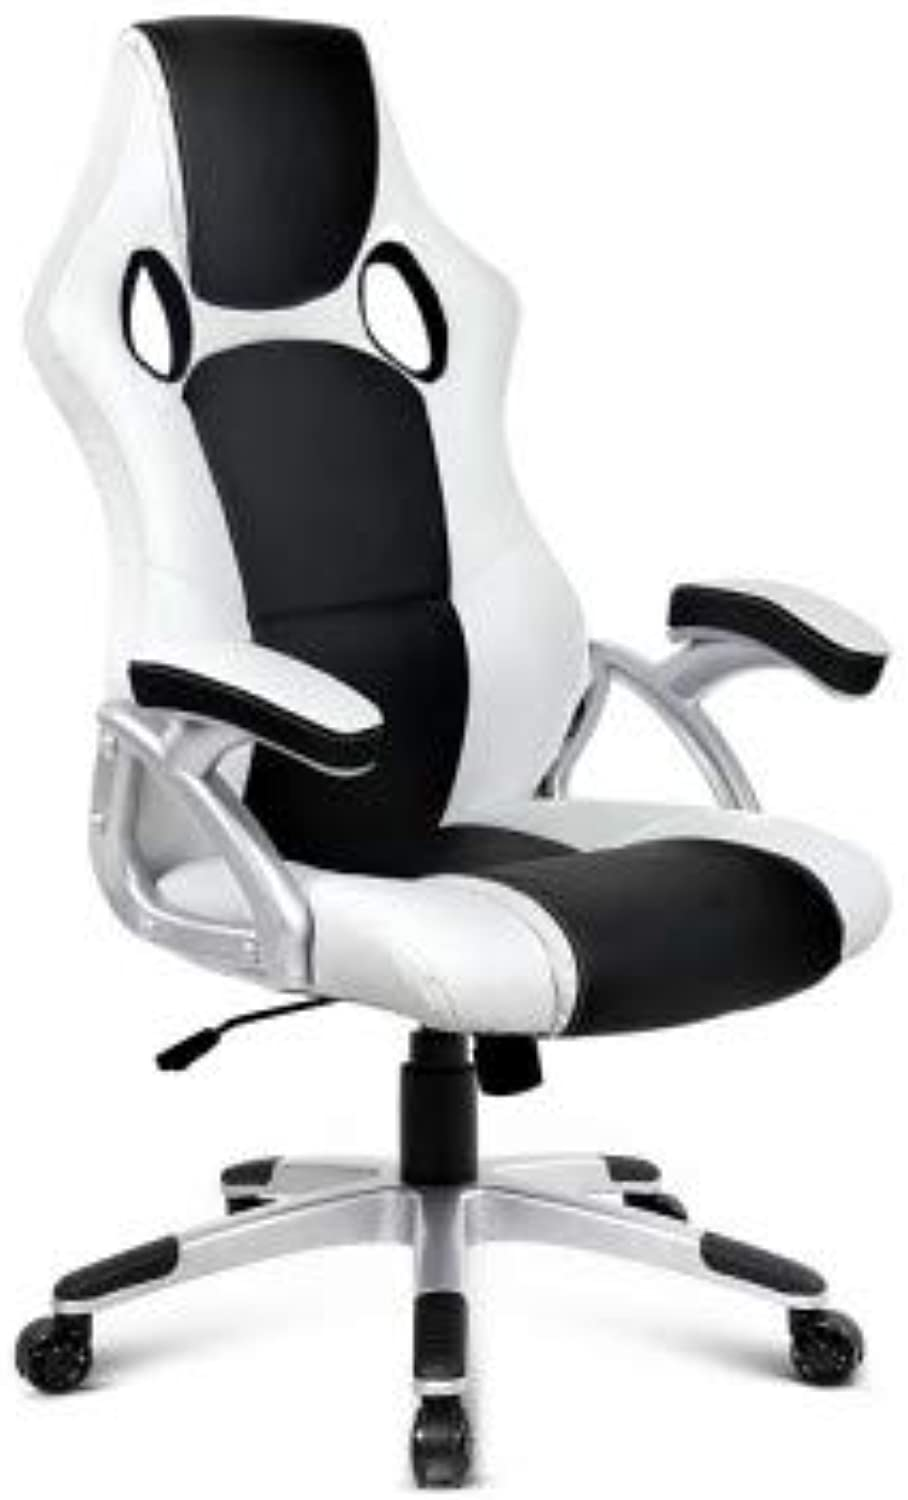 Racing Style Gaming Chair, PU Leather - White & Black